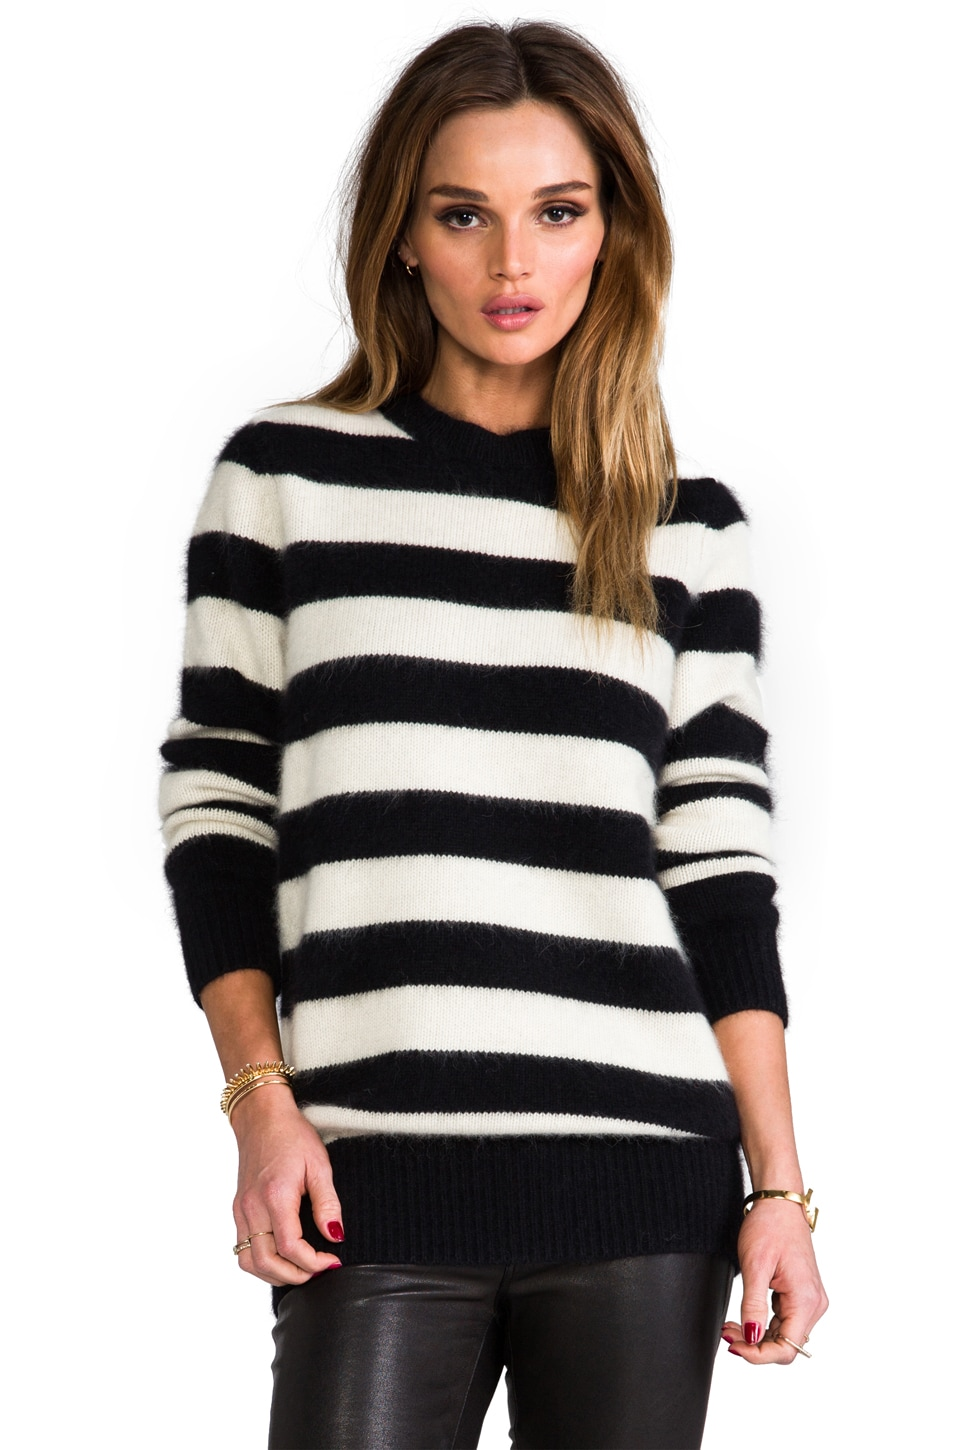 DemyLee Ava Stripe Sweater in Ivory/Black